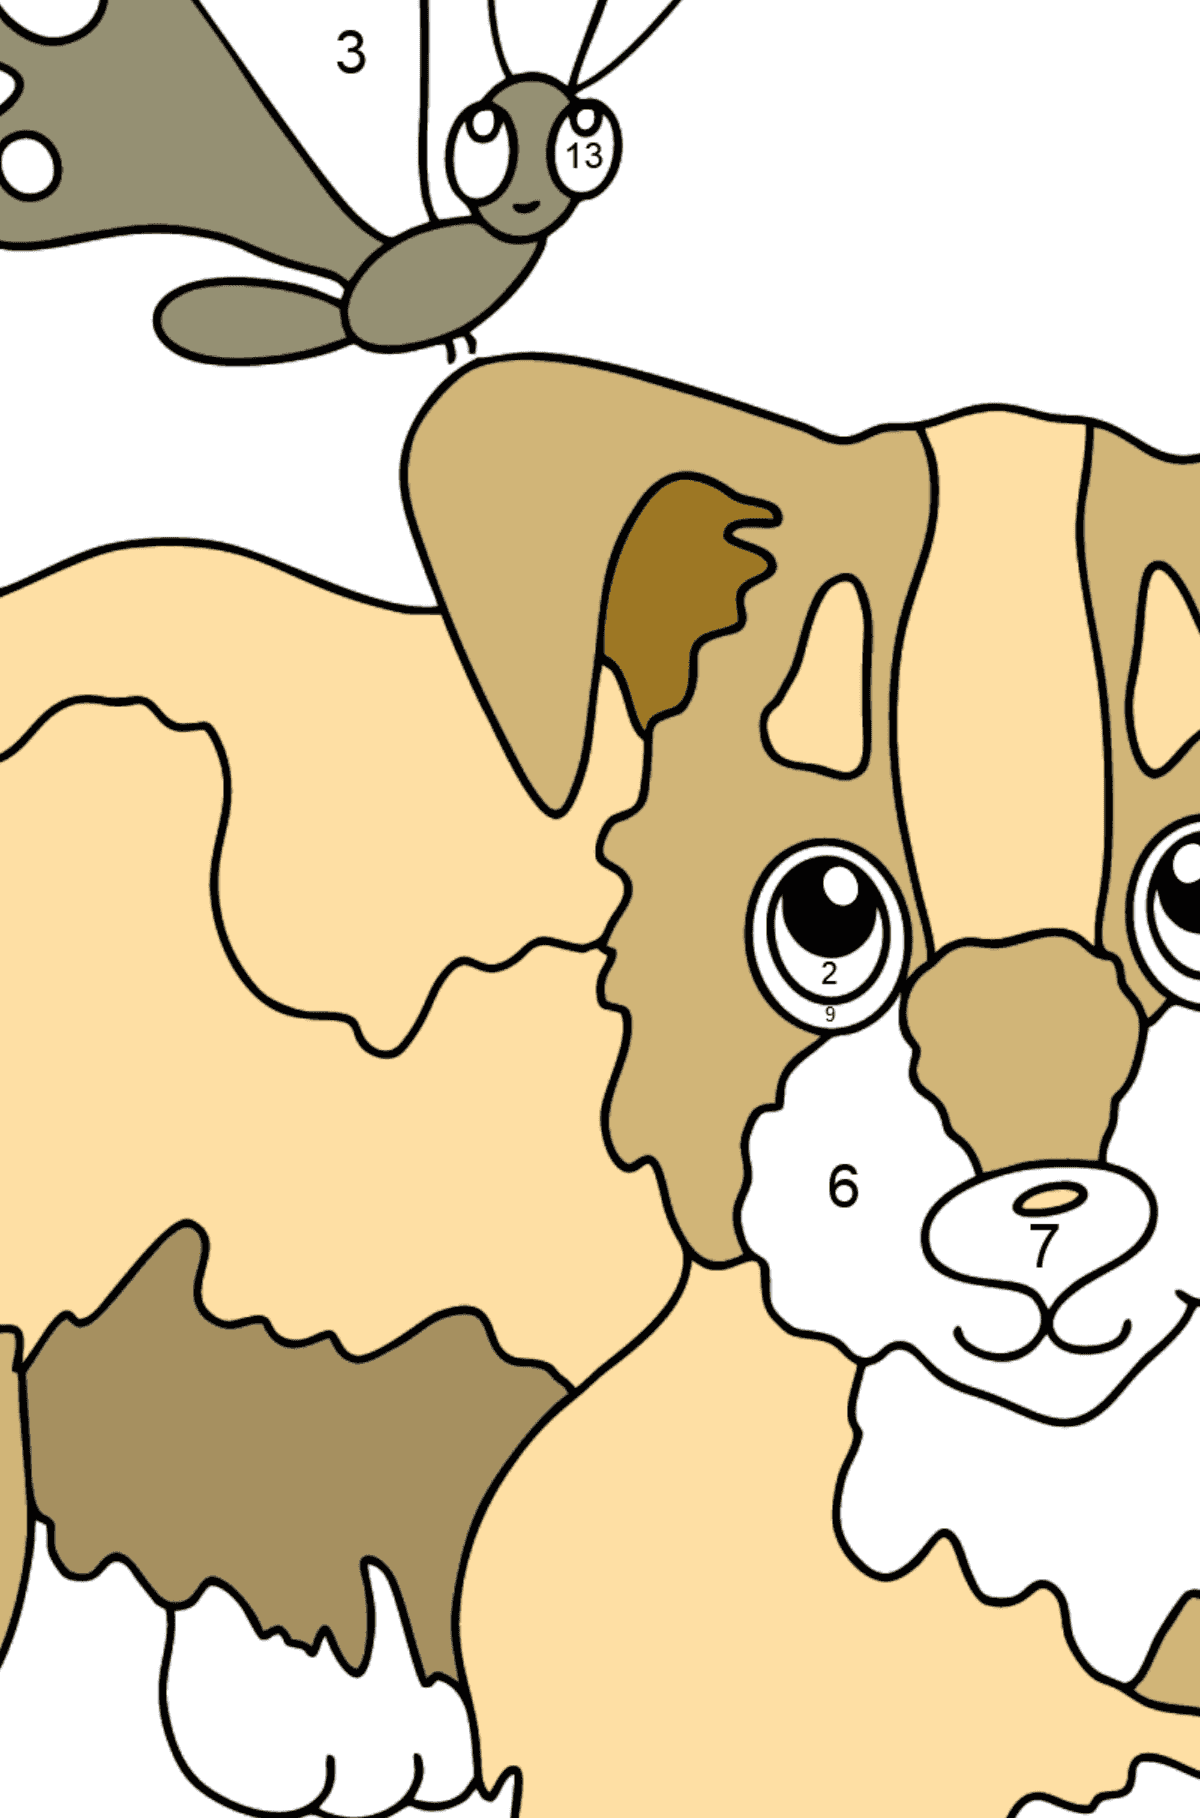 Coloring Page - A Dog is Playing with a Beautiful Butterfly - Coloring by Numbers for Kids